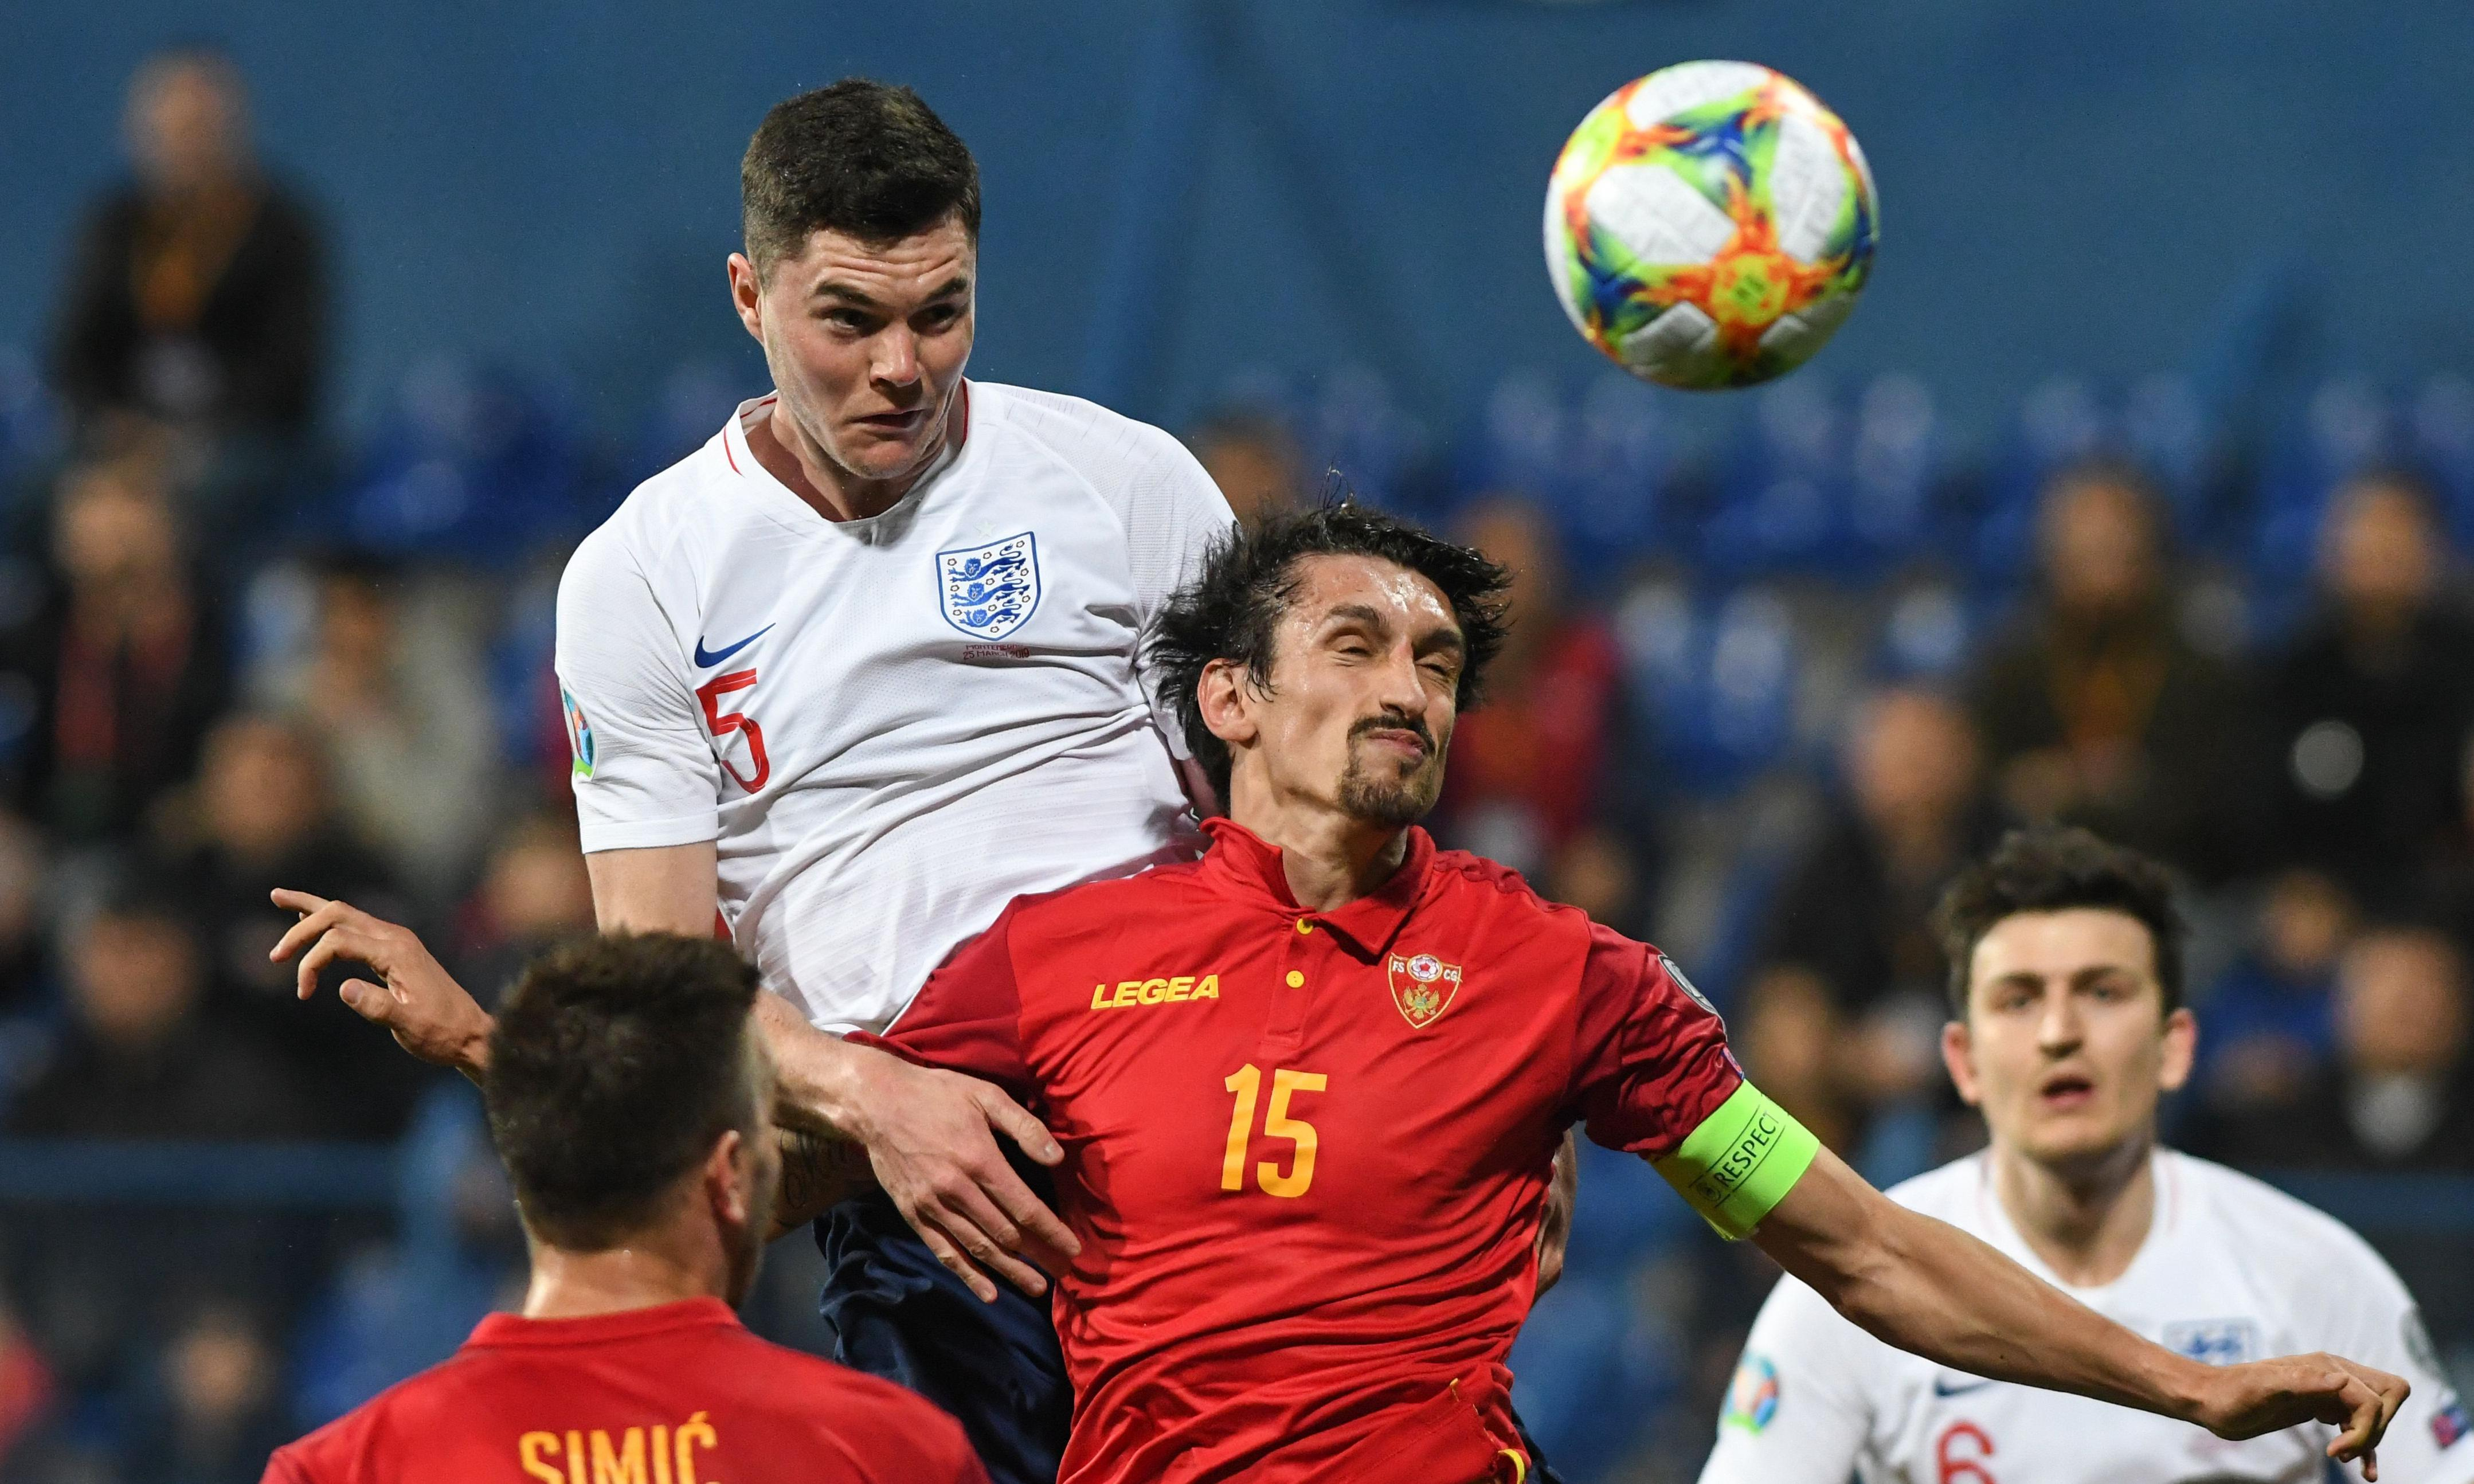 Montenegro 1-5 England: player ratings from the Euro 2020 qualifier